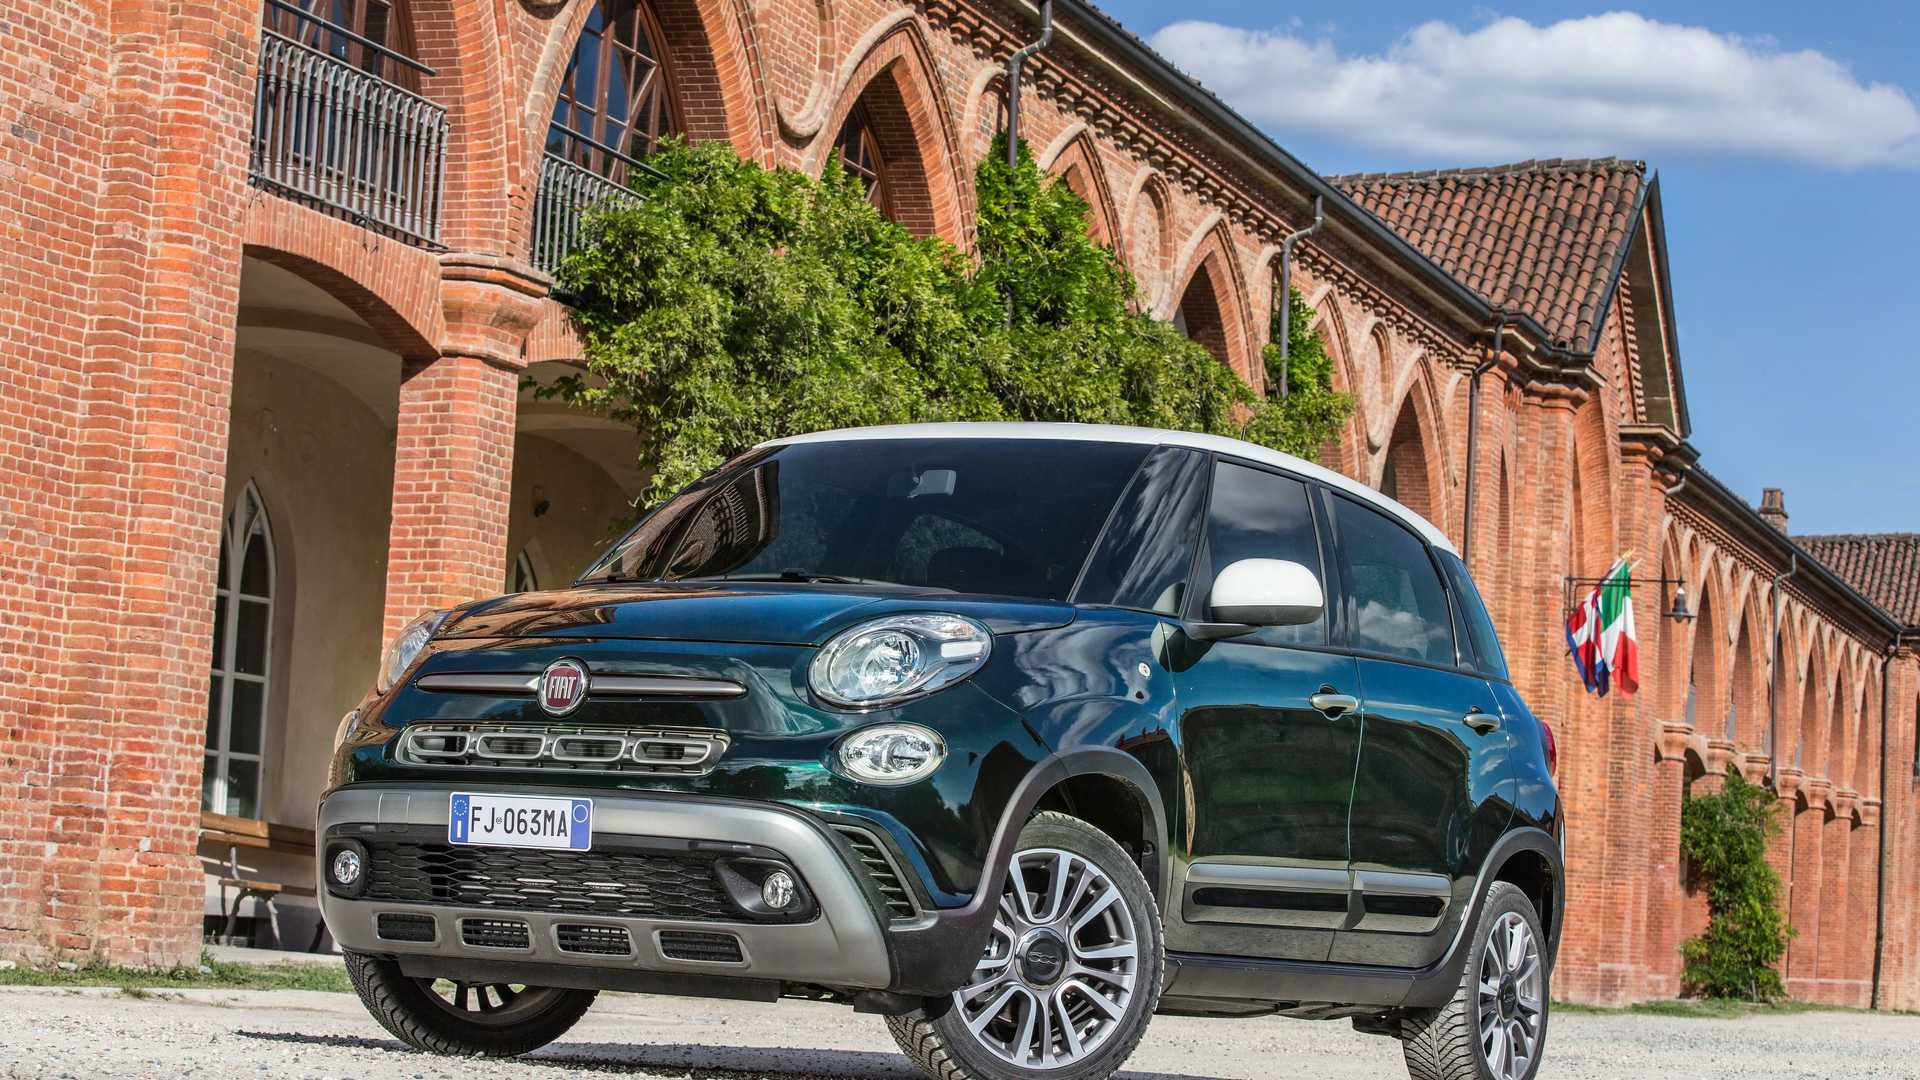 2018_Fiat_500L_cross_facelift_01